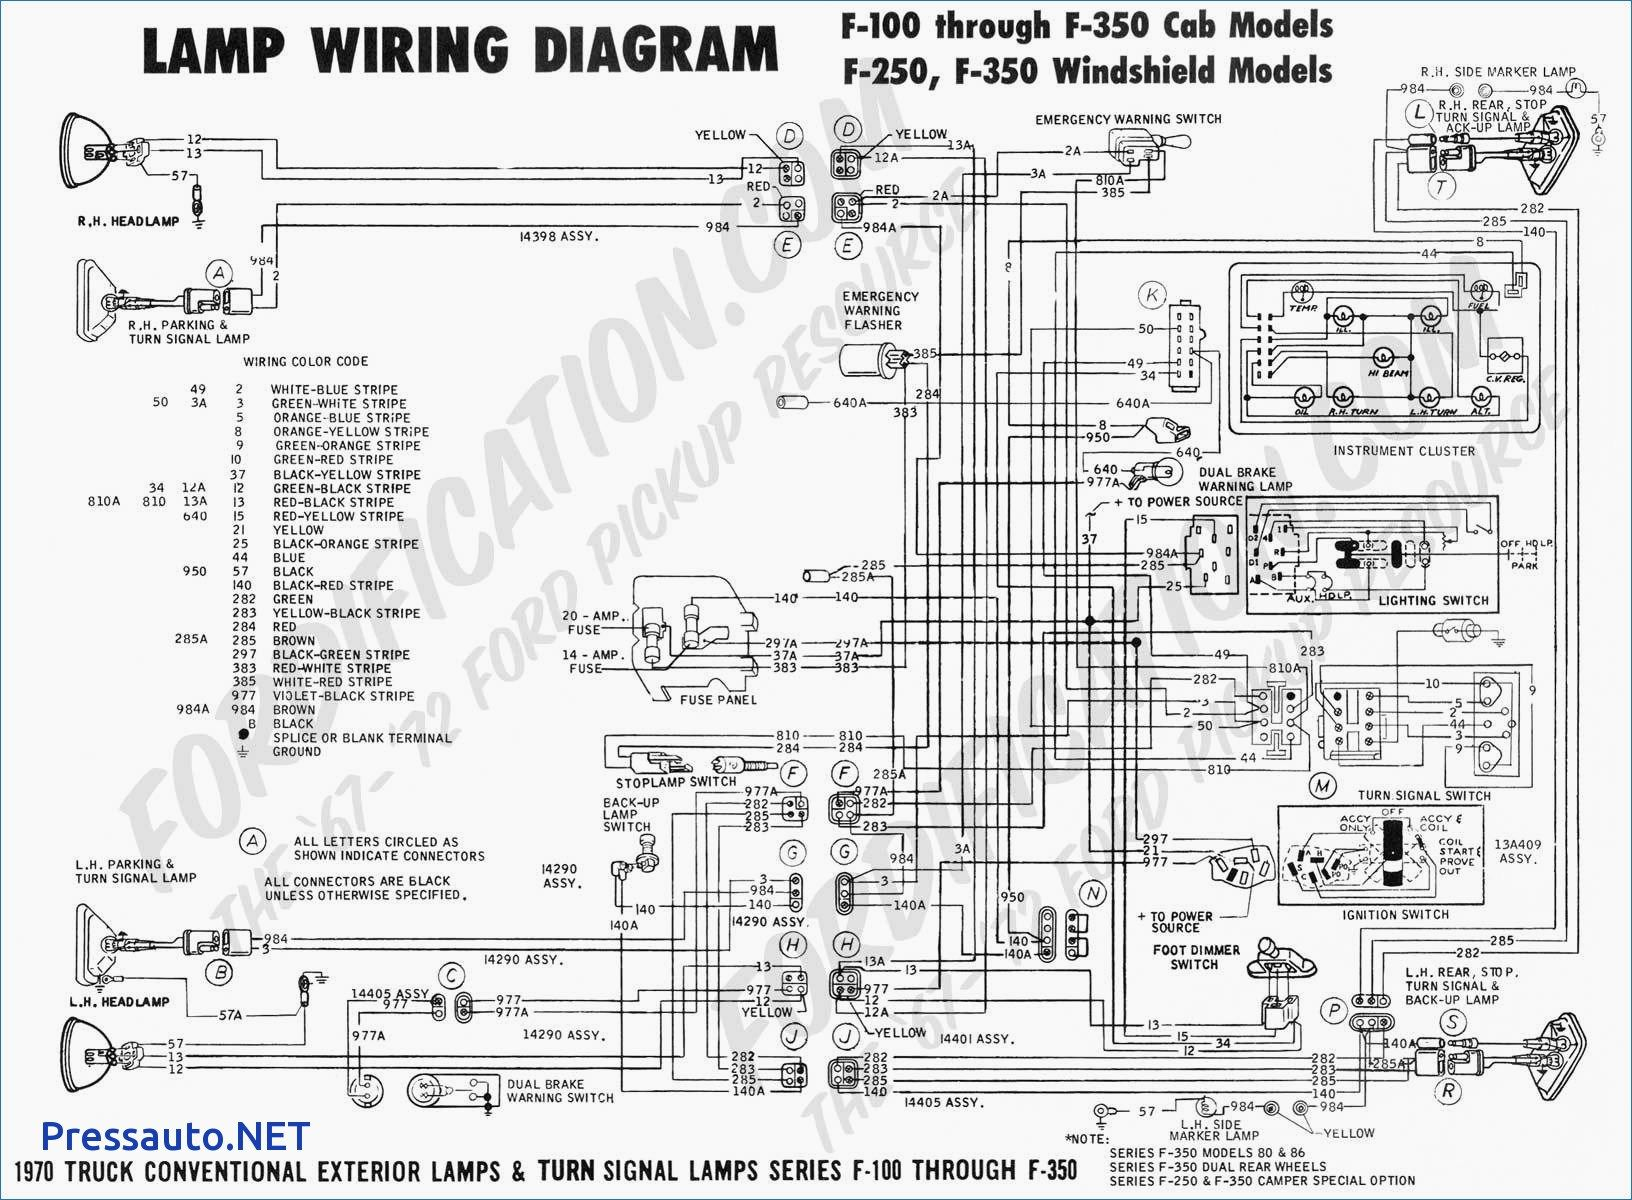 [DIAGRAM_34OR]  2002 F350 Turn Signal Wiring Diagram Diagrams Schematics Inside Ford F250 |  Electrical diagram, Trailer wiring diagram, Electrical wiring diagram | 1966 Ford F100 Blinker Switch Wiring |  | Pinterest